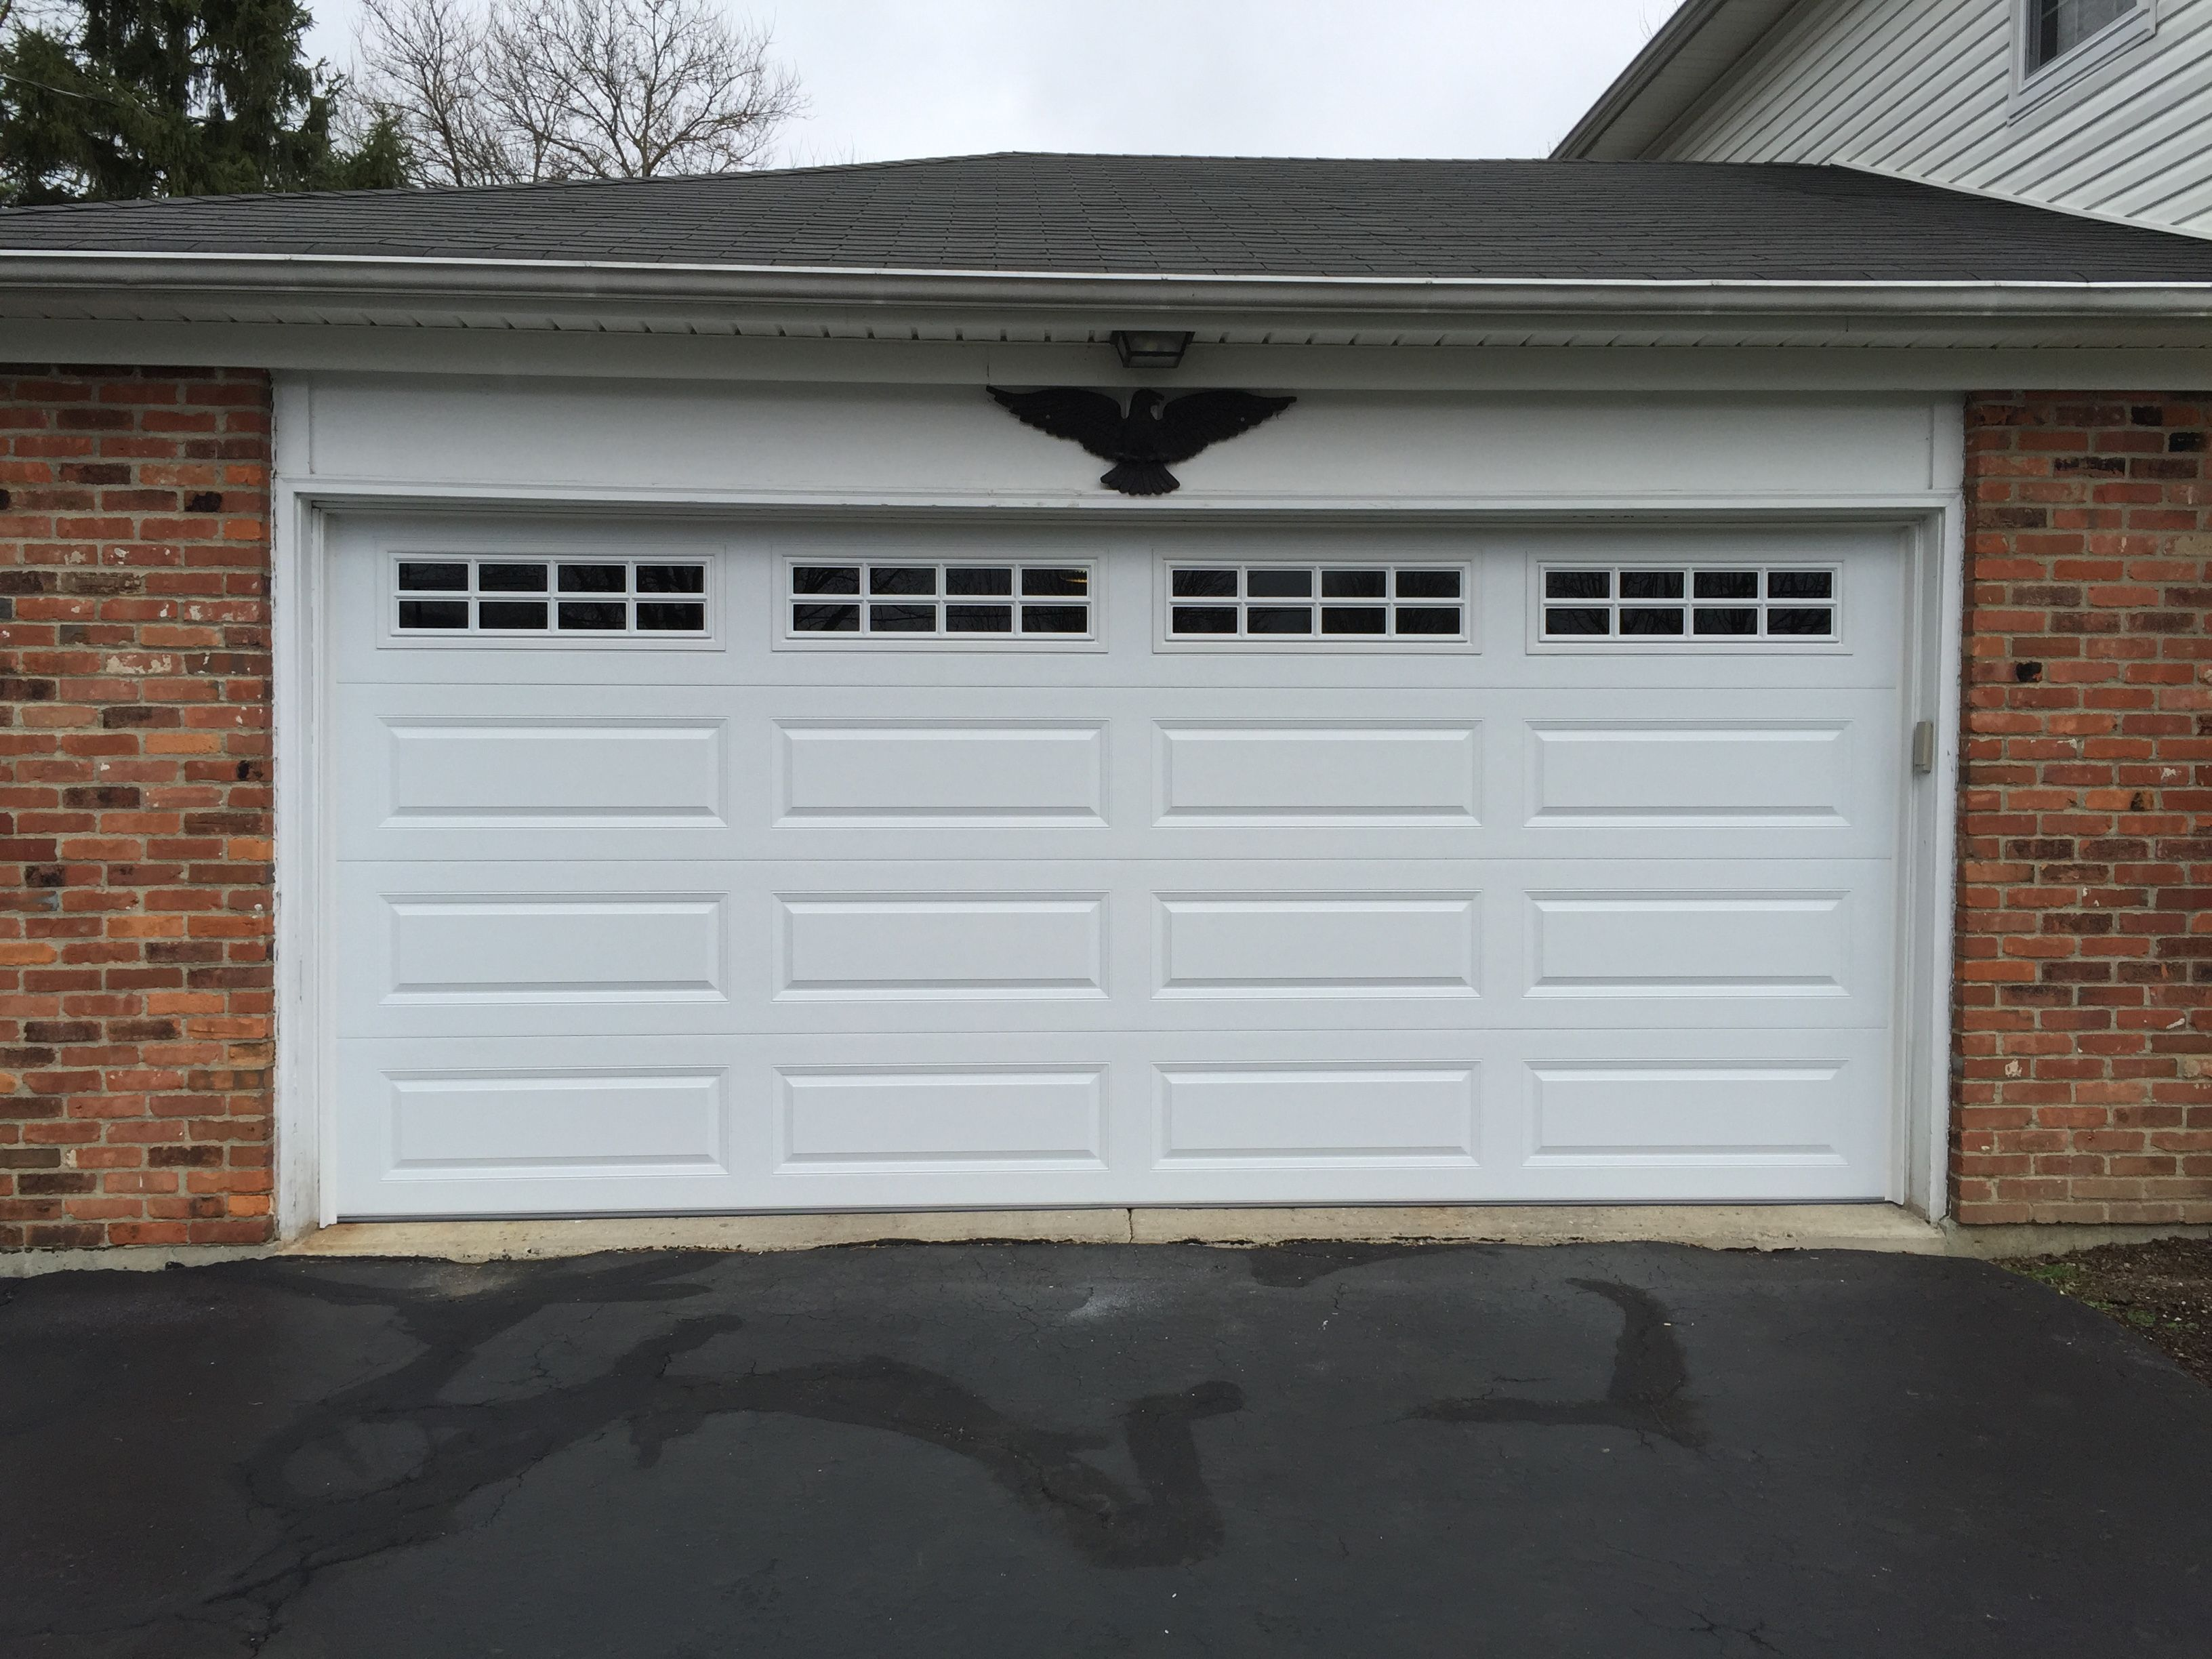 Classic C H I 4283 Long Raised Panel With Tinted Stockton Windows Garage Door Panels Door Installation Garage Doors